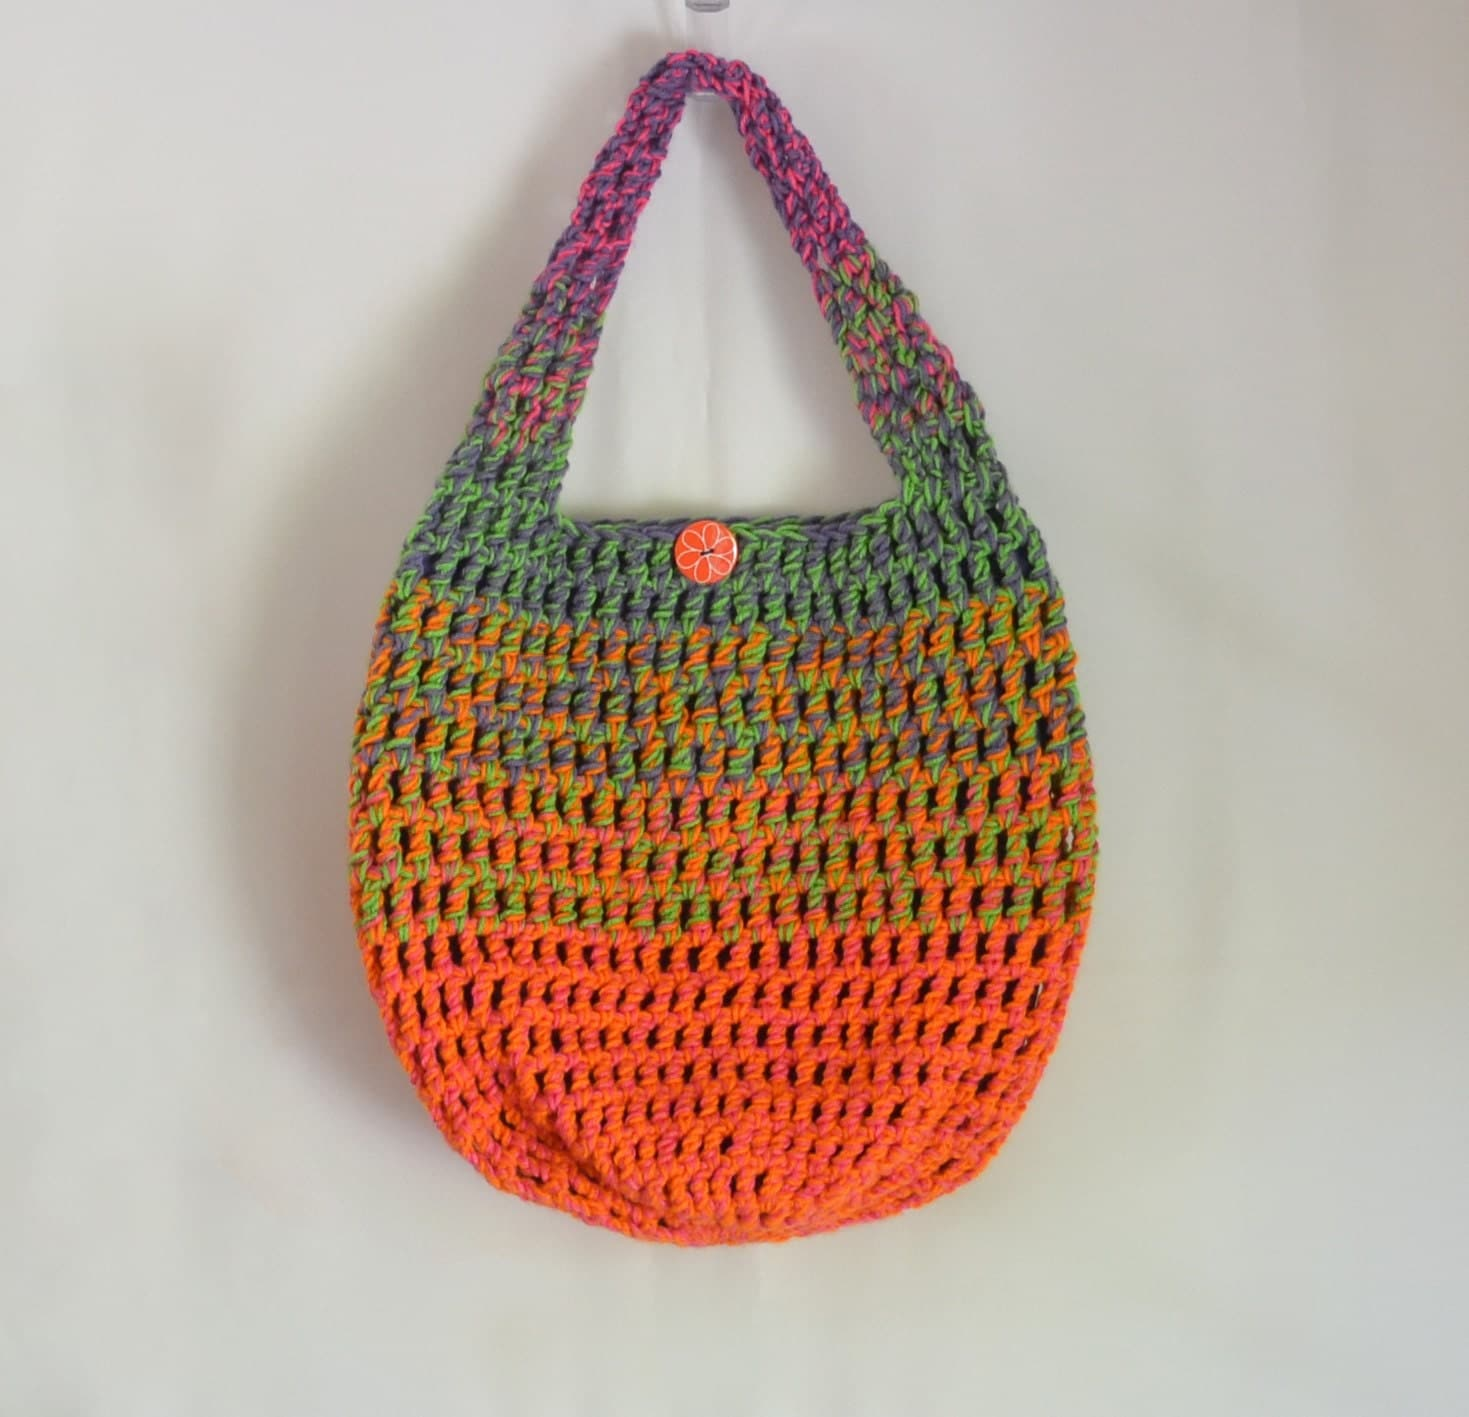 Crochet Hobo Bag Pattern : Crochet Shoulder Bag Hobo Bag Rainbow Neon Spring by 2LeftHandz